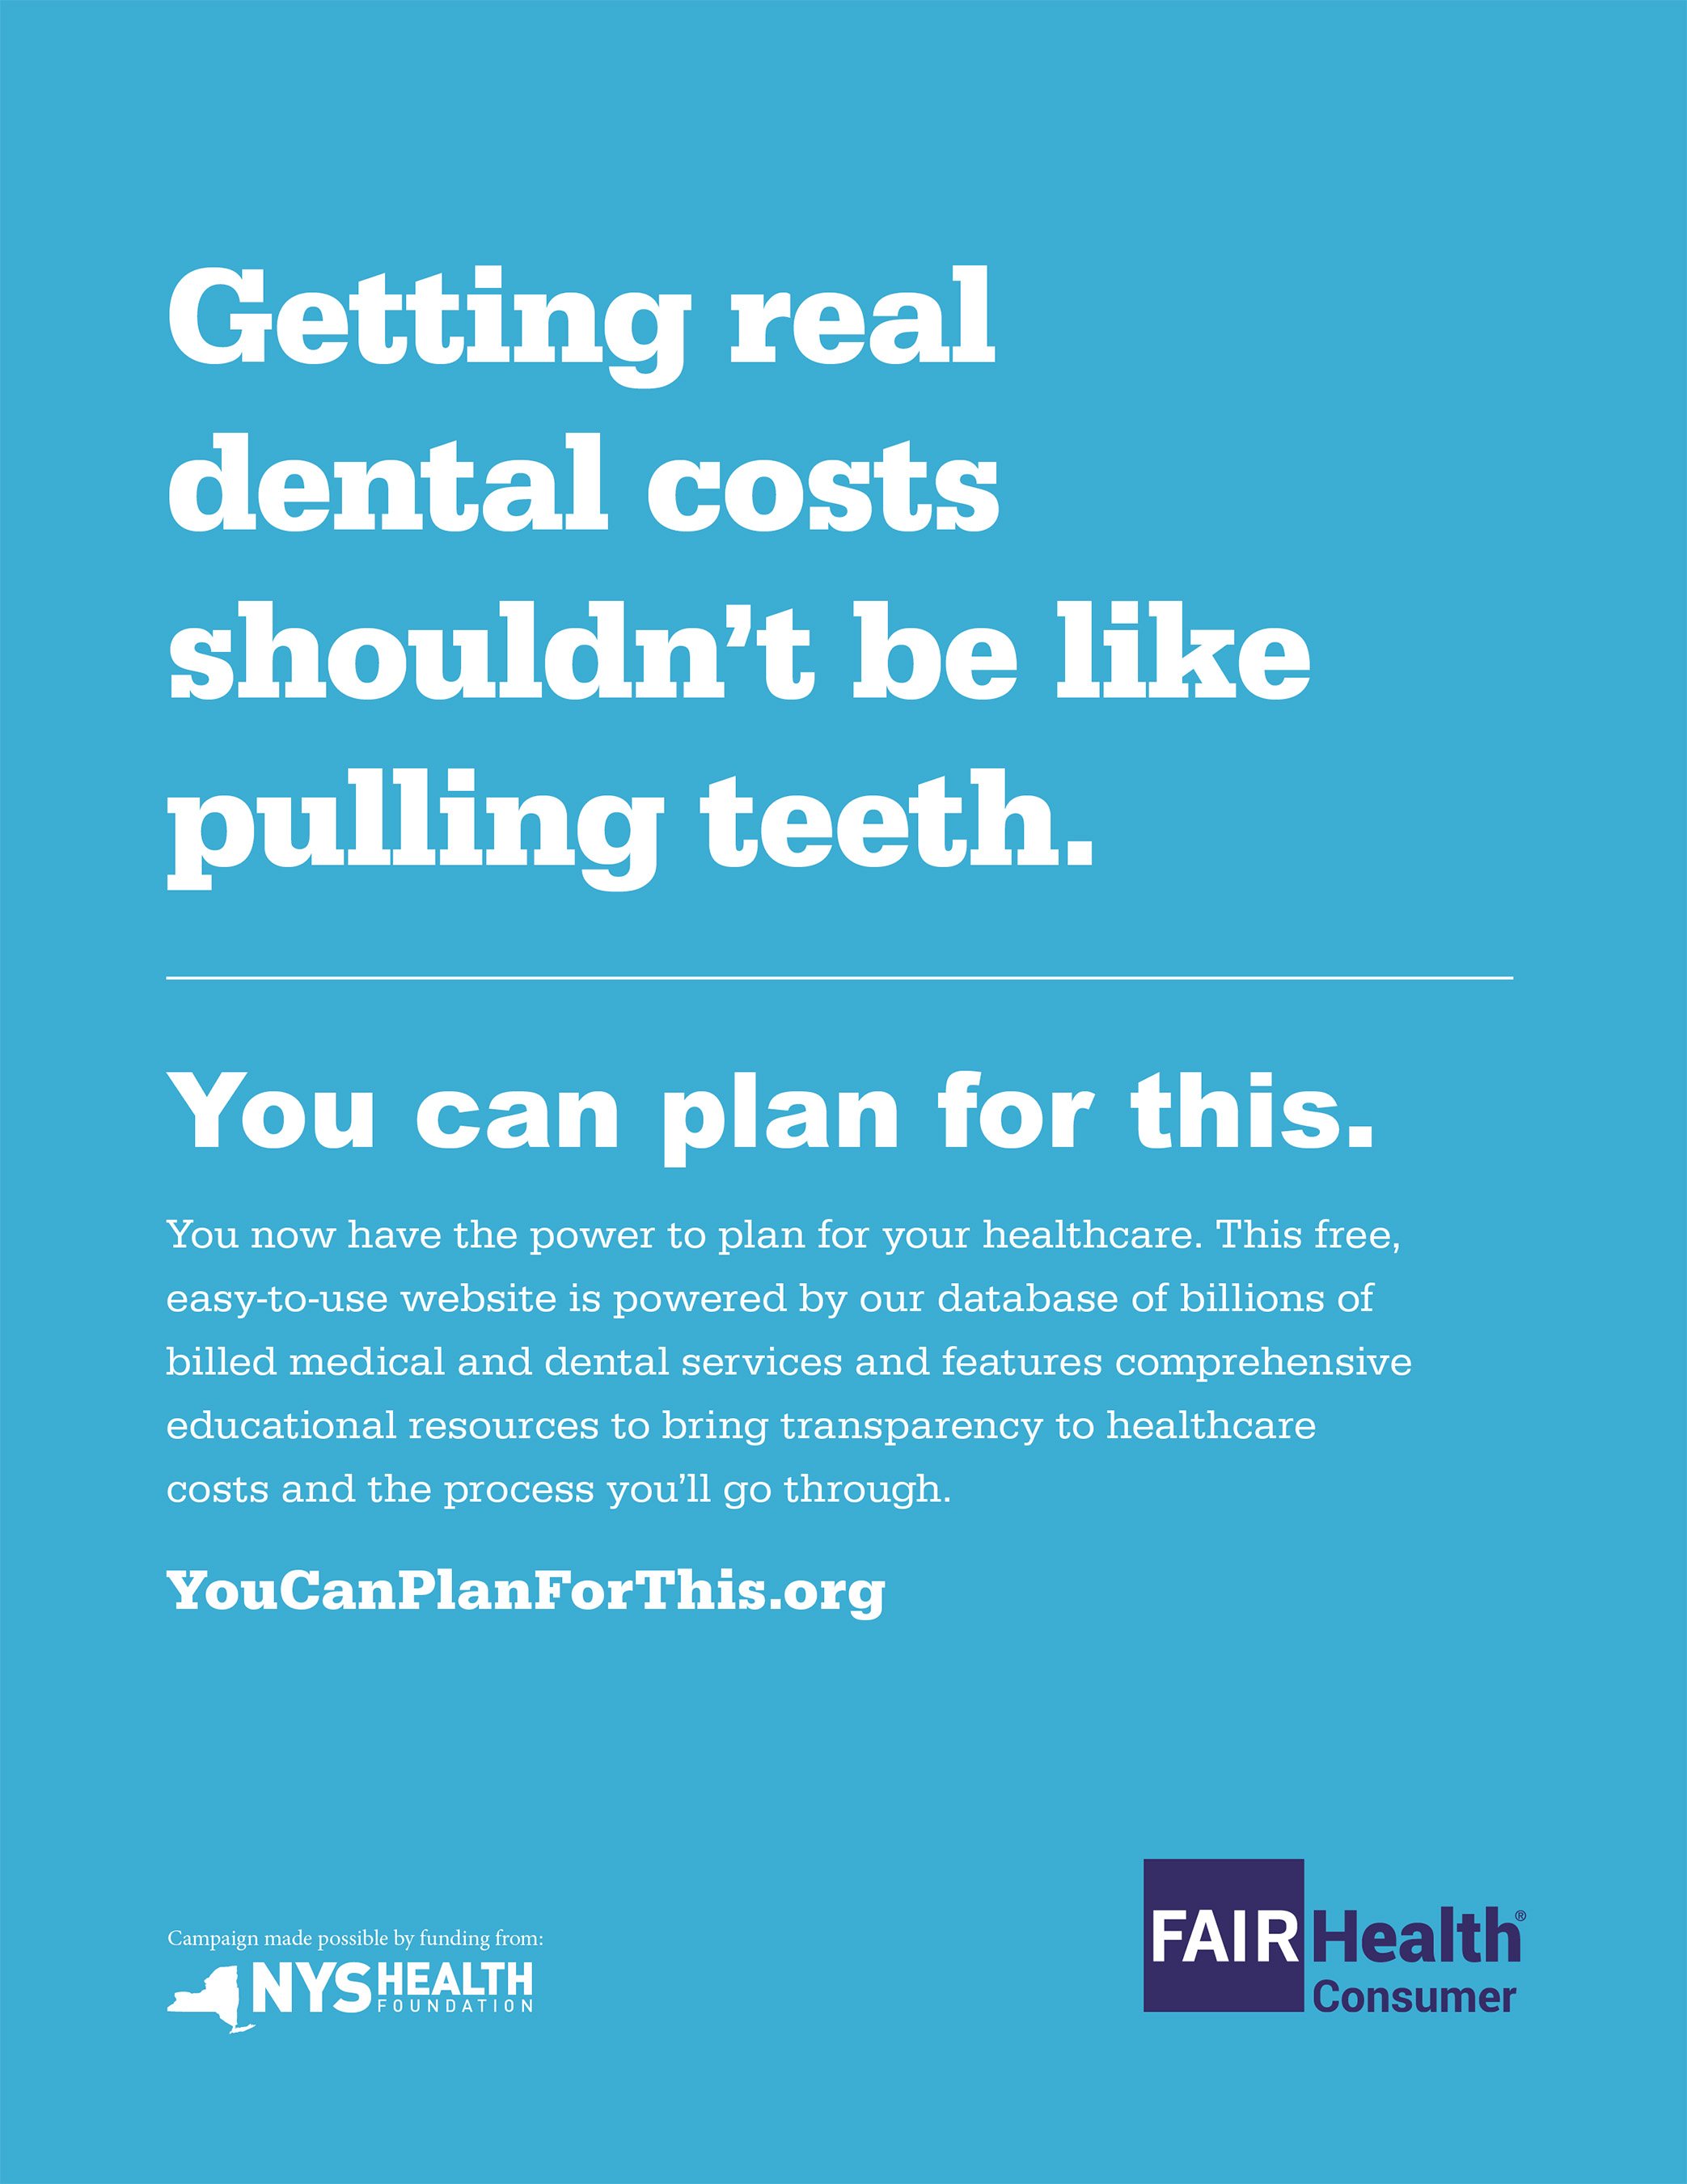 Getting real dental costs shouldn't be like pulling teeth